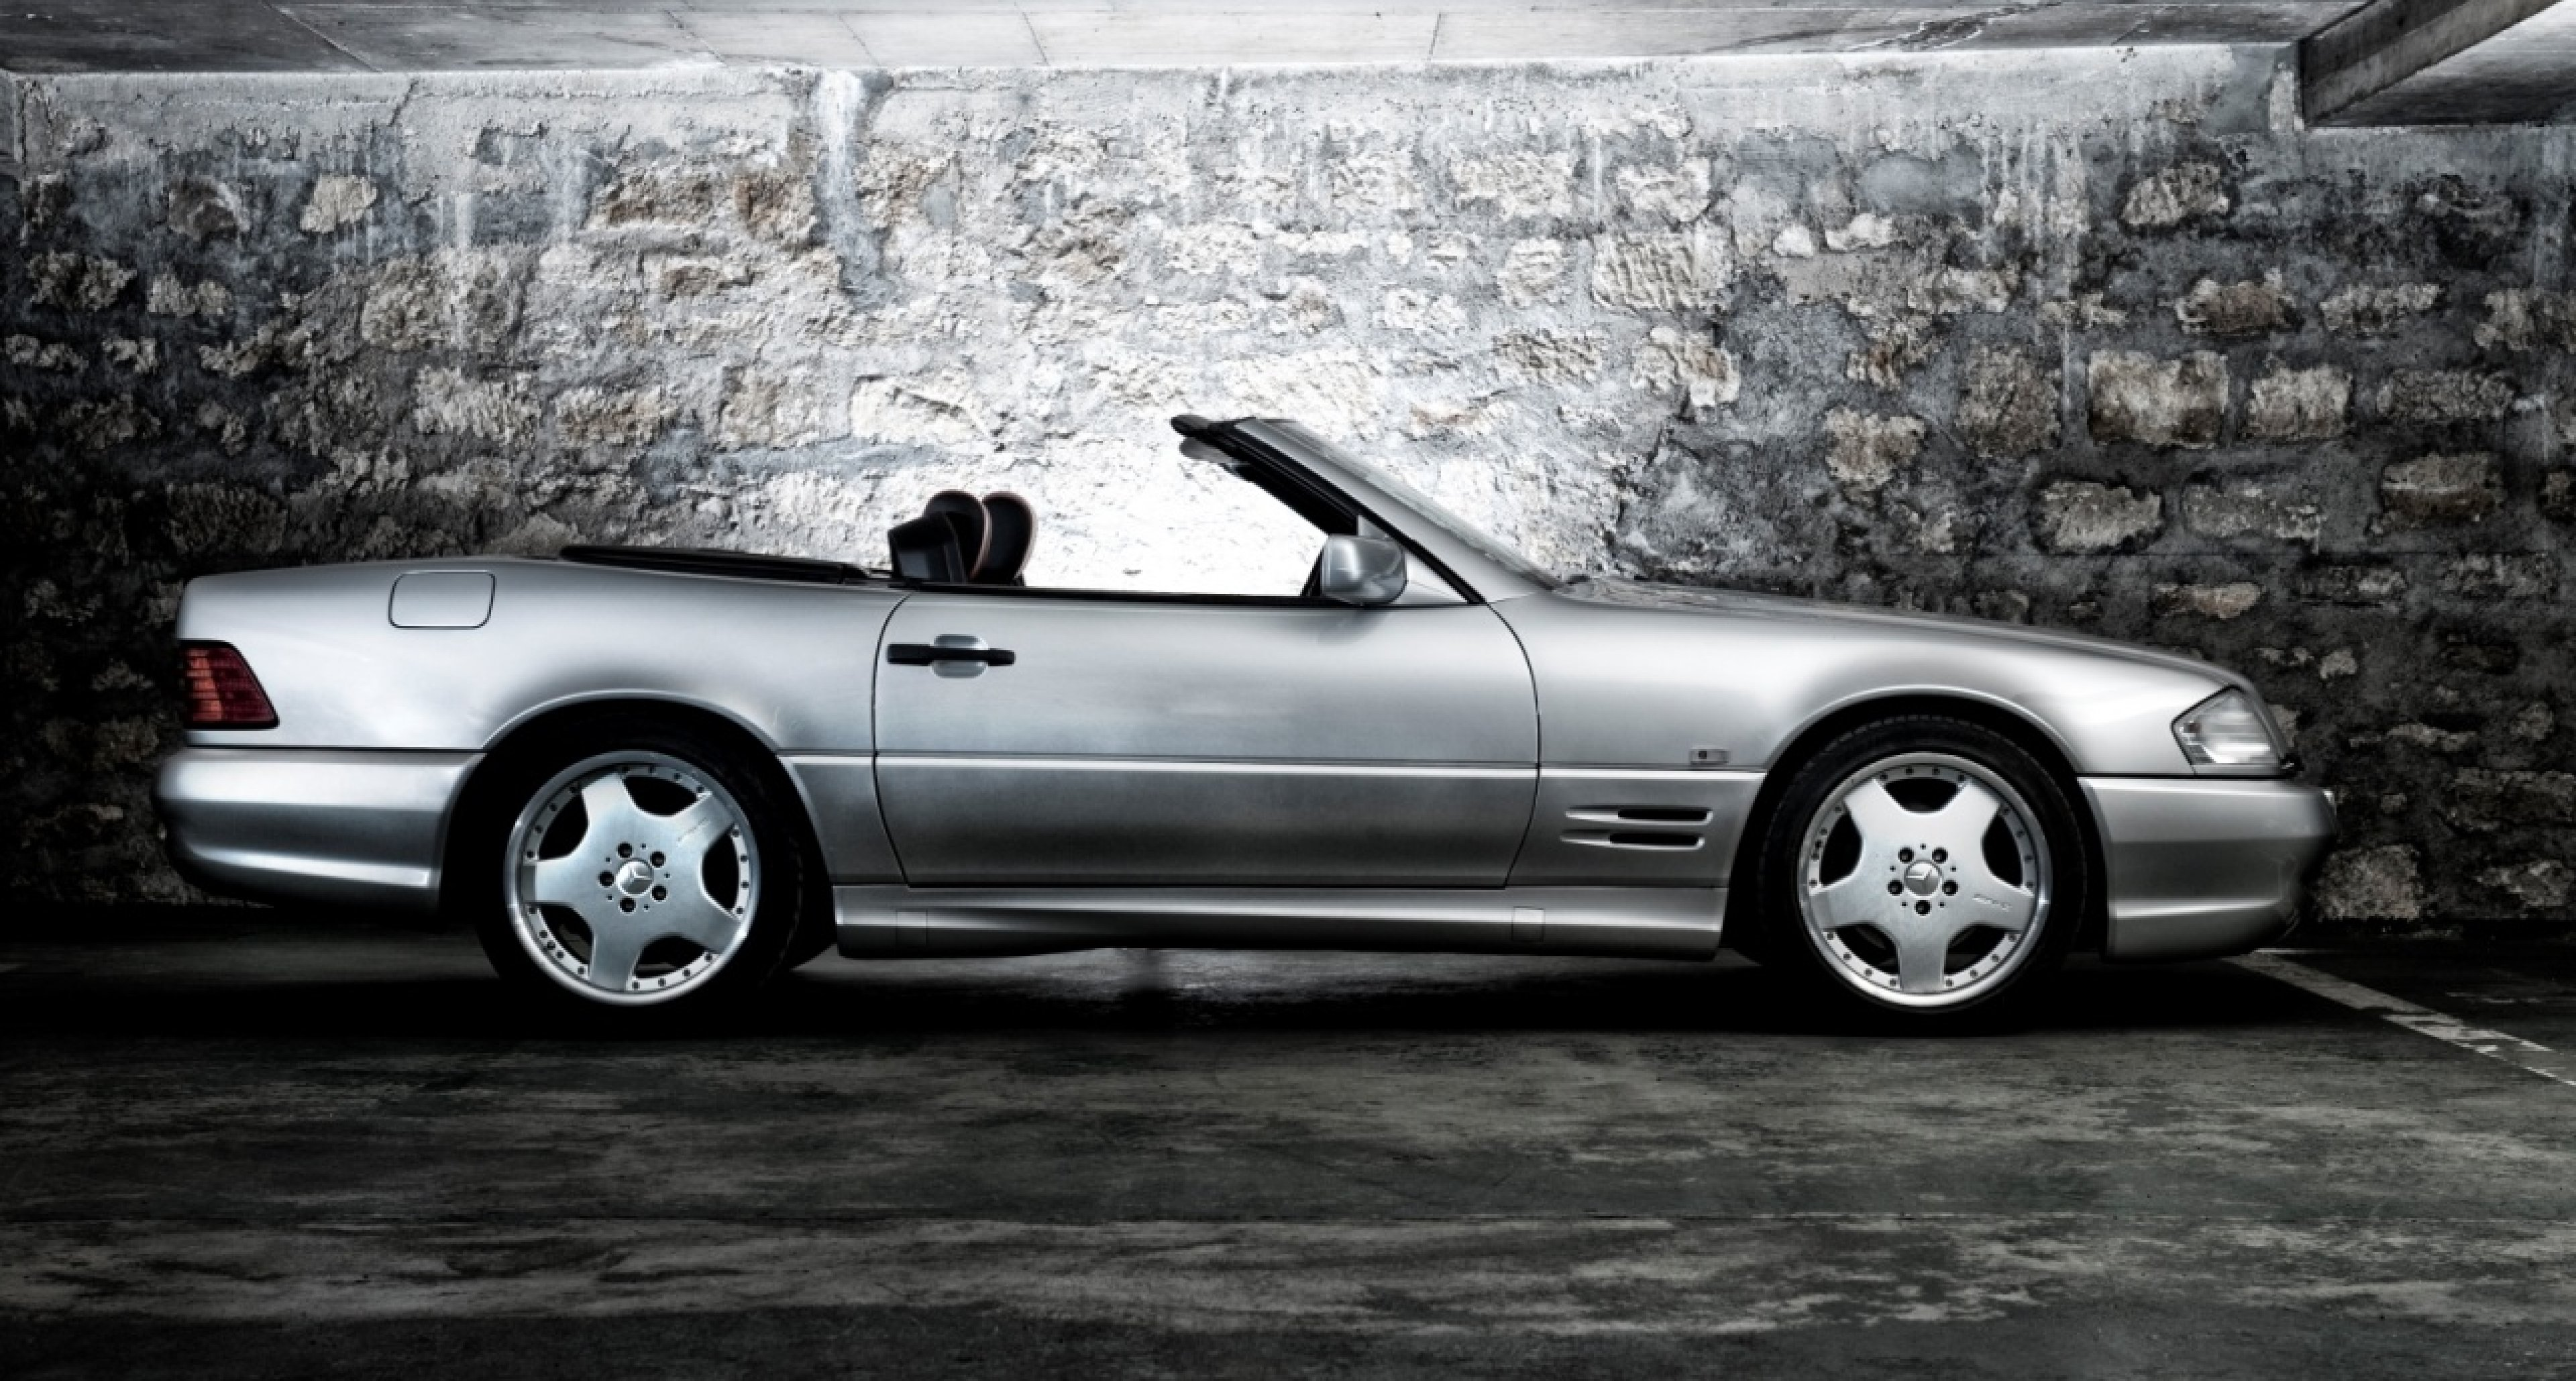 http://www.classicdriver.com/sites/default/files/styles/full_width_slider/public/article_images/sl60-3.jpg?itok=3q8HnKZC